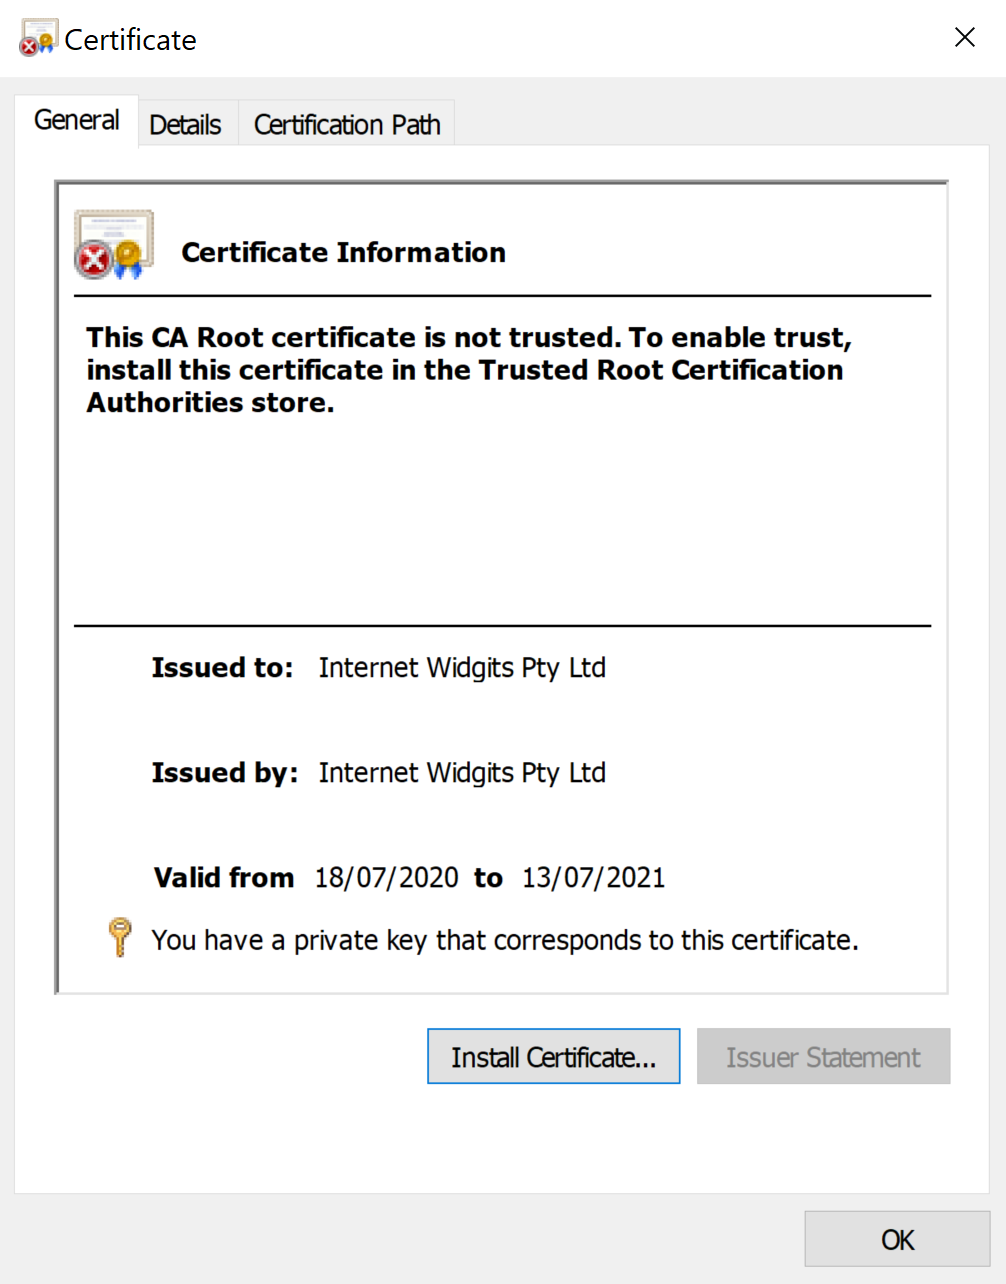 A certificate, opened in Windows 10, showing that a private key corresponding to this certificate is present.